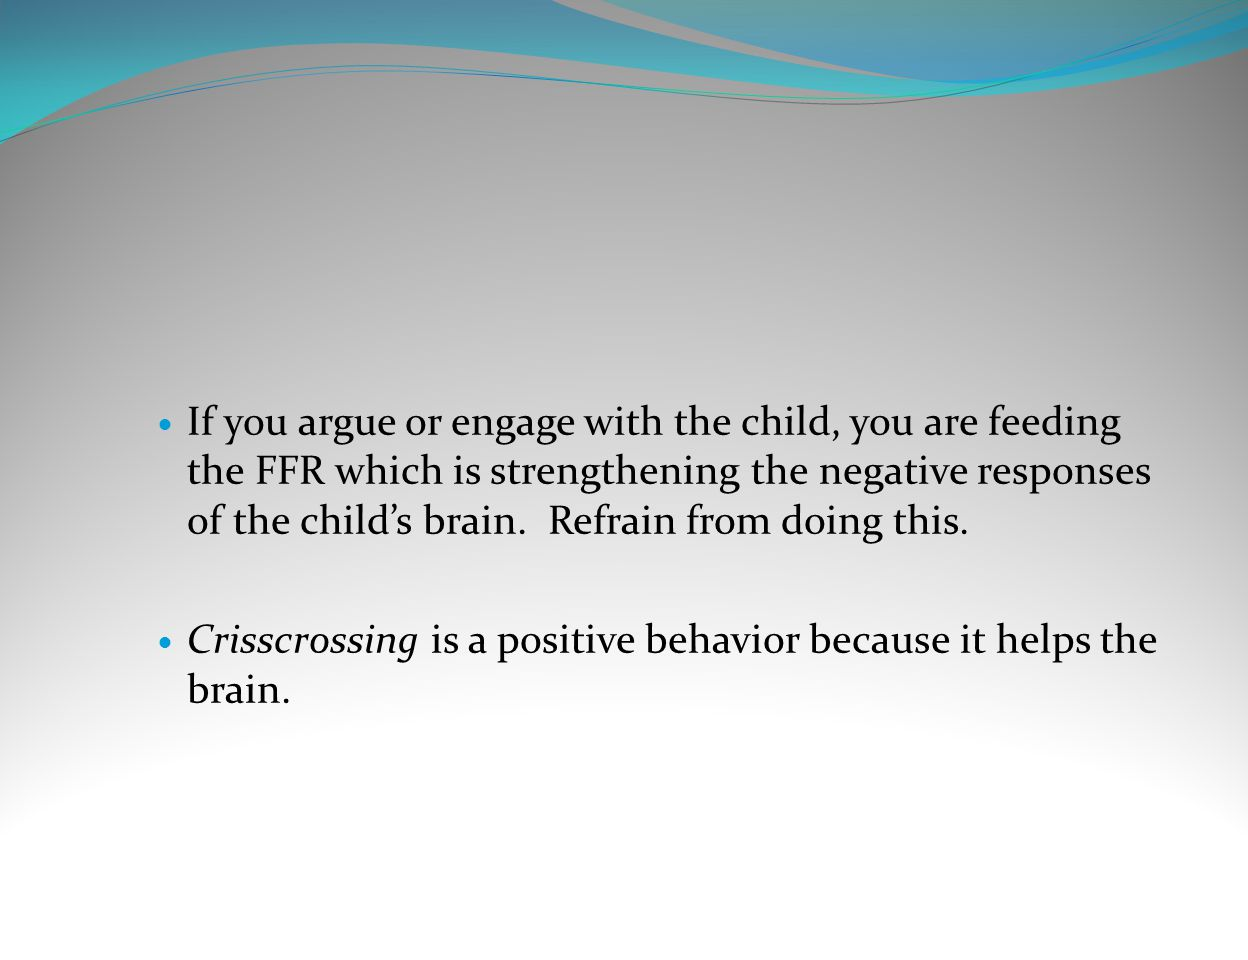 If you argue or engage with the child, you are feeding the FFR which is strengthening the negative responses of the child's brain. Refrain from doing this.